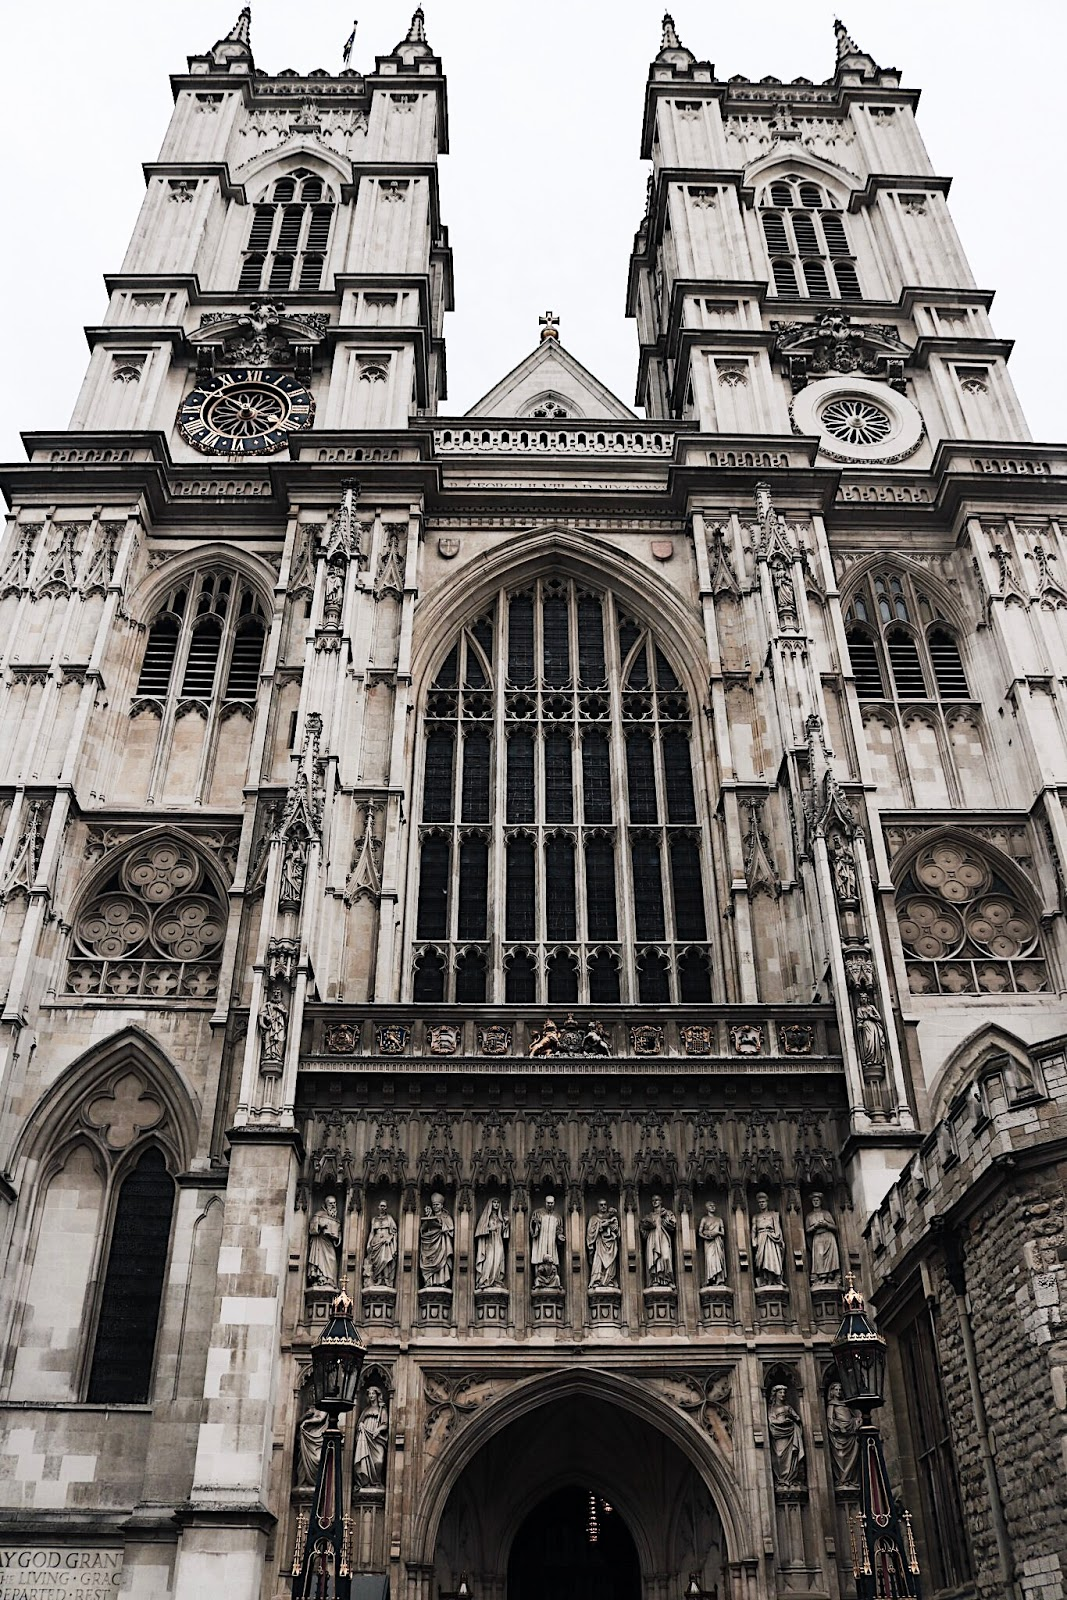 pauline-dress-blog-mode-deco-lifestyle-travel-voyage-europe-londres-angleterre-idees-visites-parcours-touristique-instagram-instagrammable-lieux-westminster-abbaye